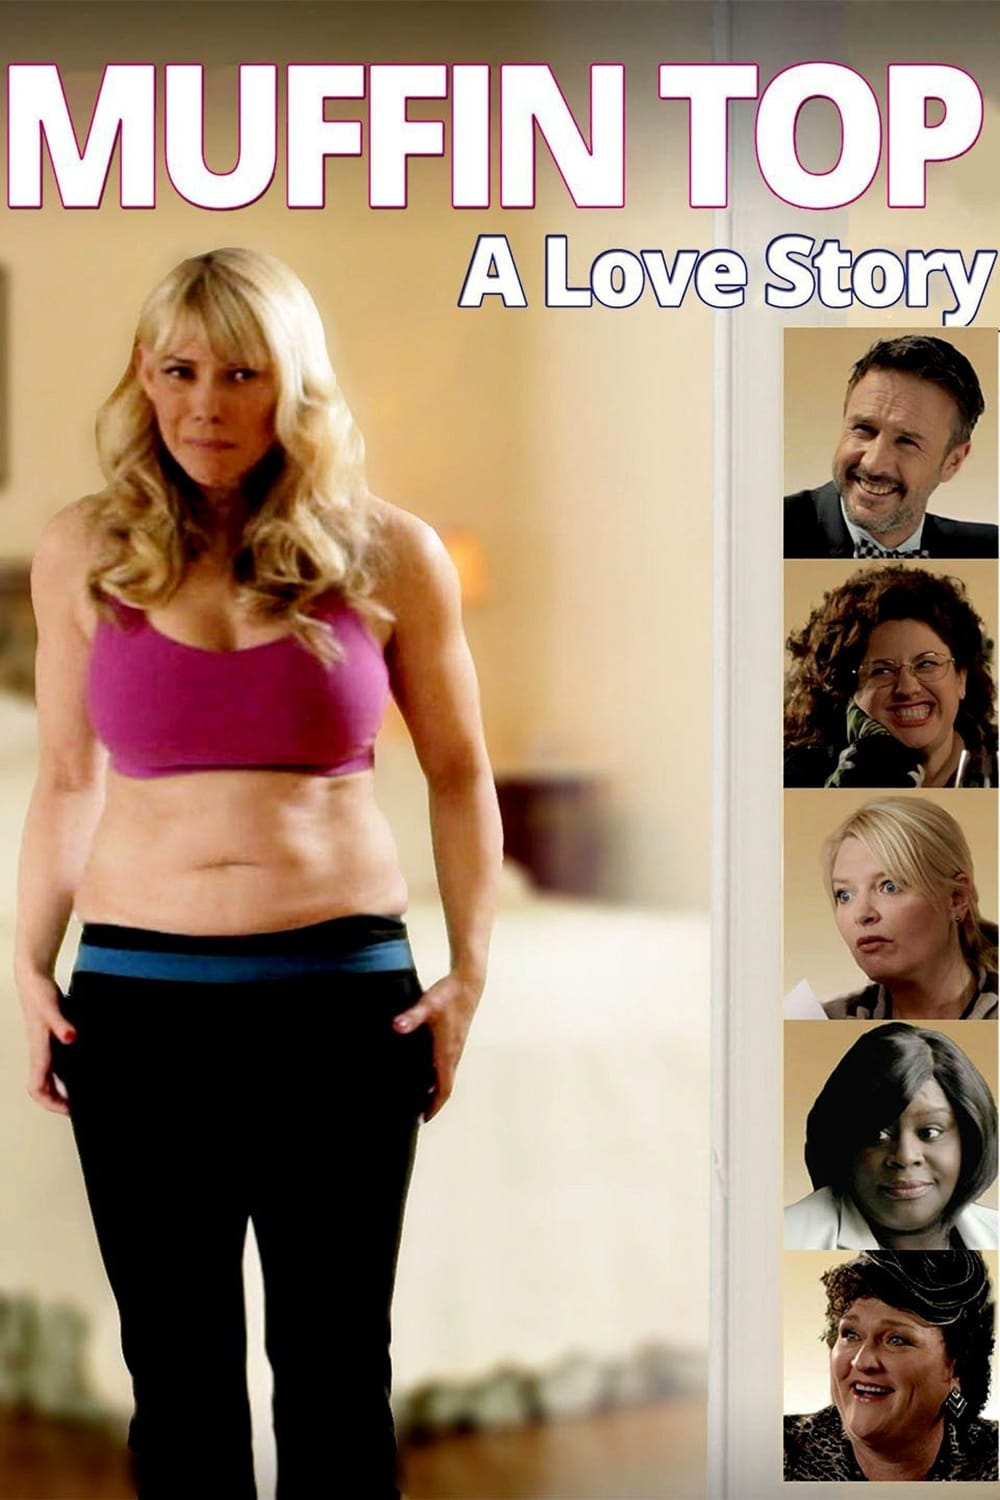 Muffin Top: A Love Story (2014)